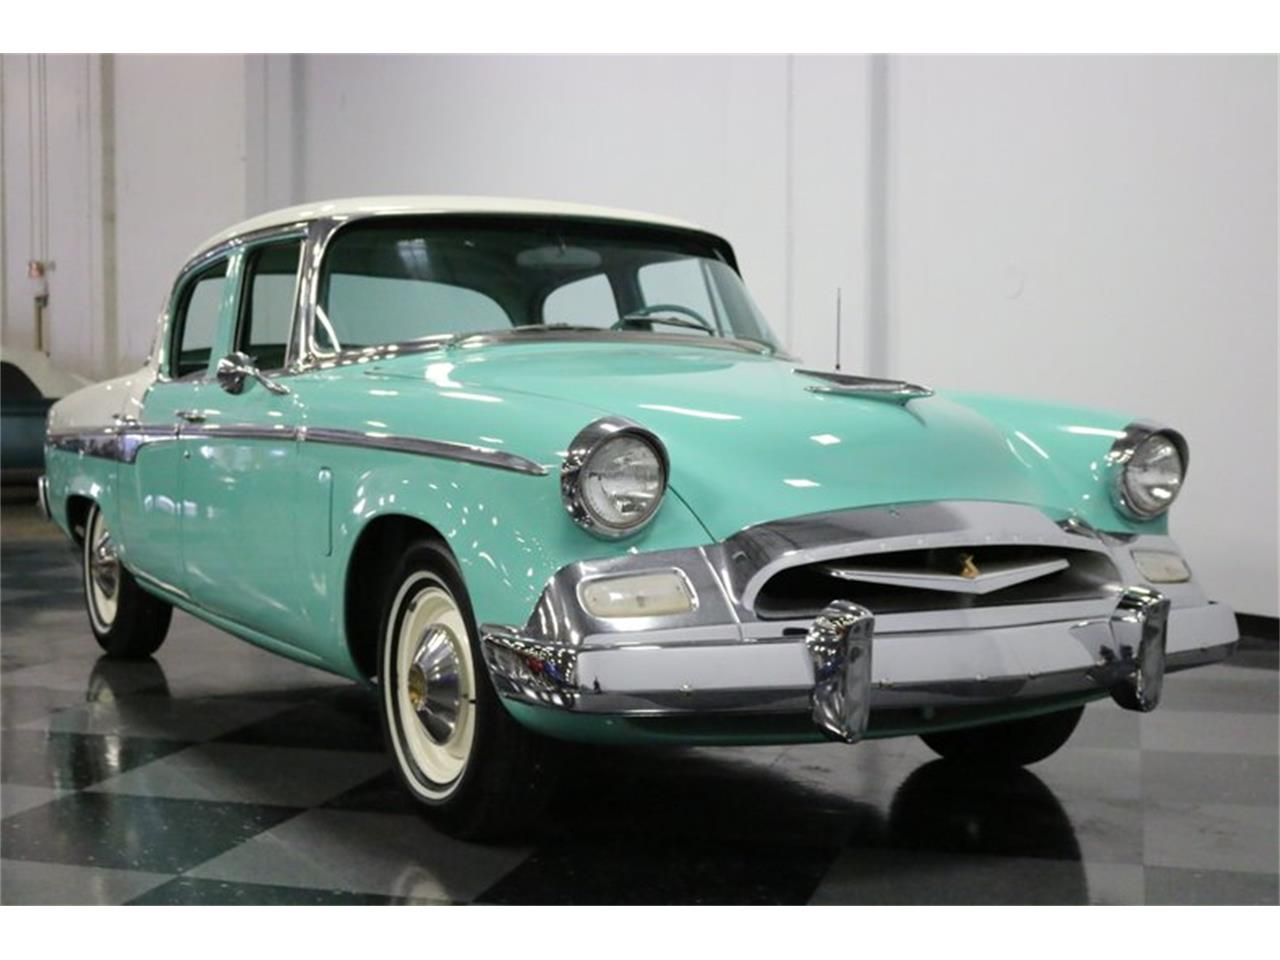 Large Picture of '55 Studebaker Champion - $9,995.00 Offered by Streetside Classics - Dallas / Fort Worth - NTGN